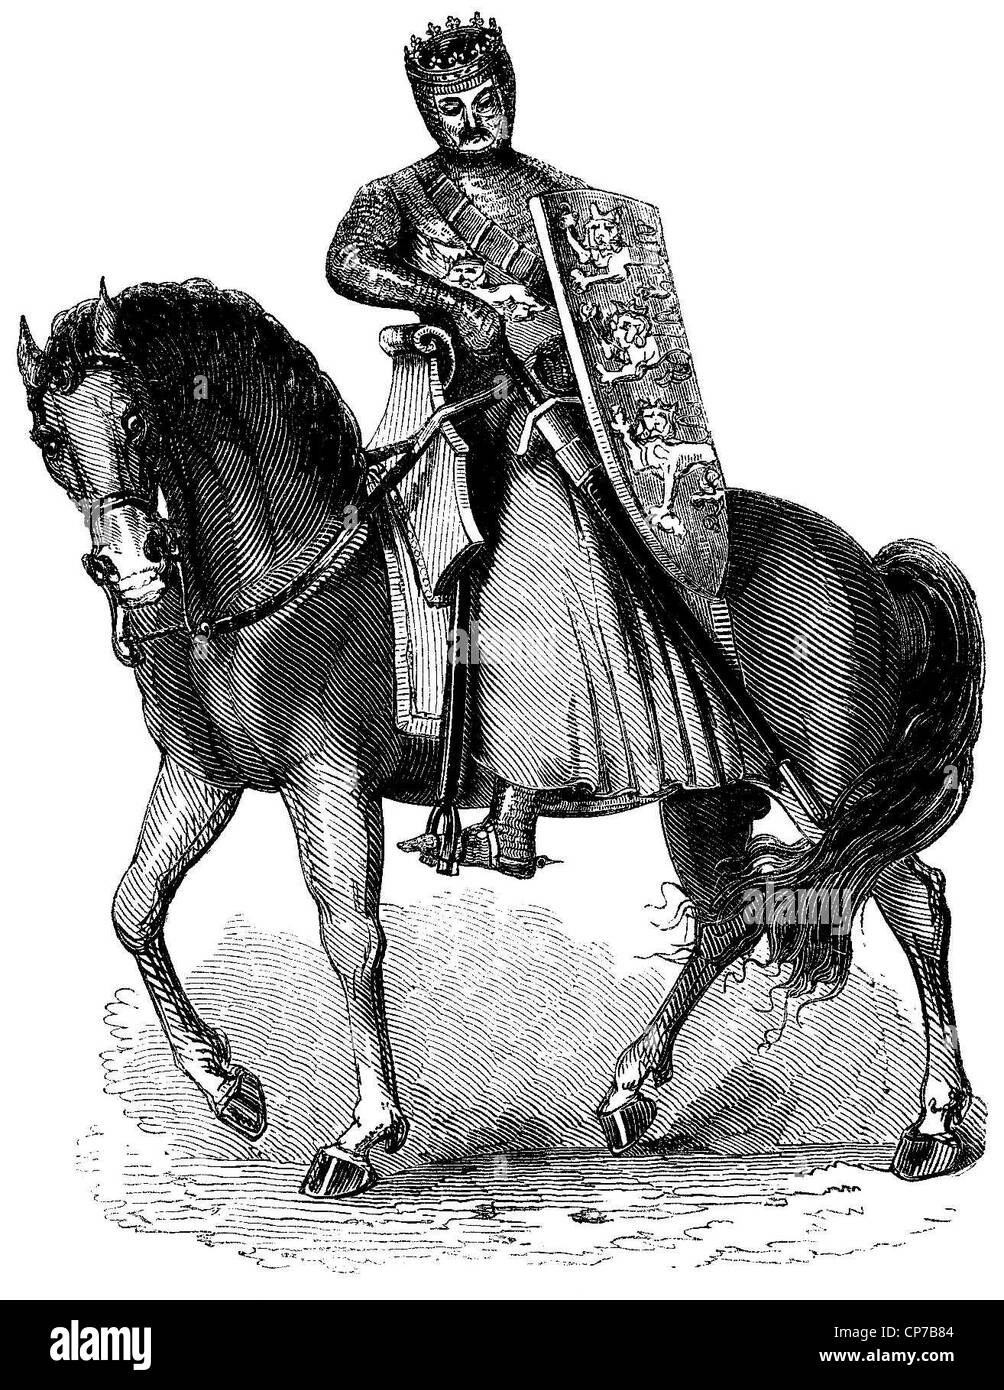 Engraving of King Edward I of England mounted on horse with chain mail armor. - Stock Image